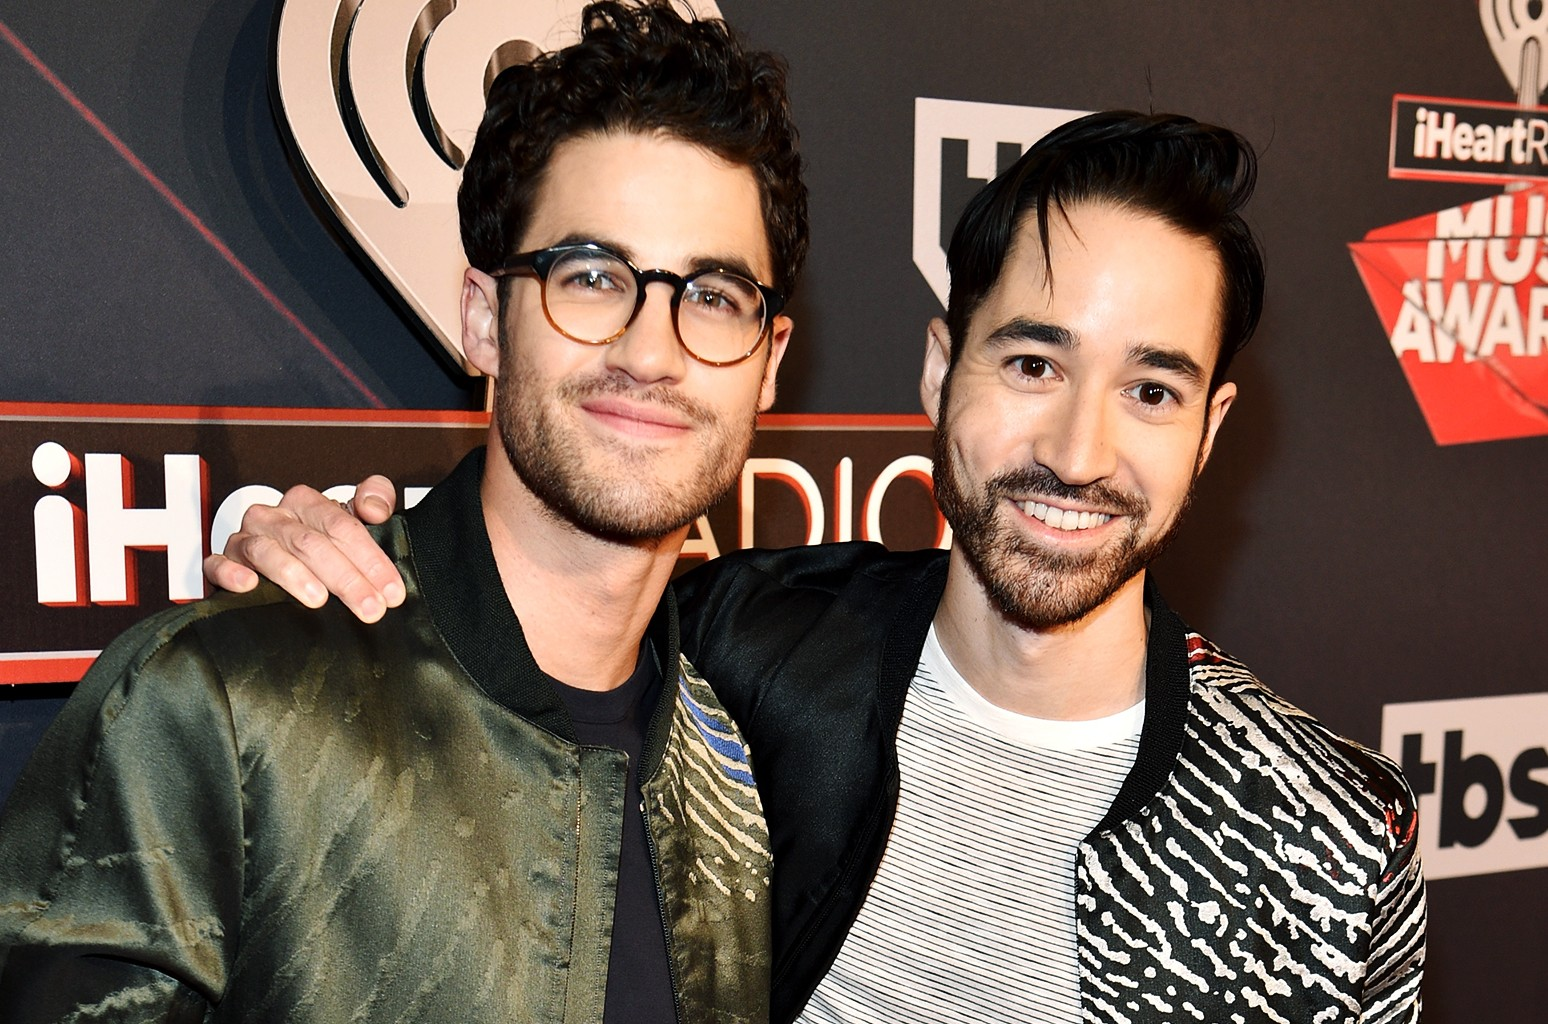 Darren Criss (L) and Chuck Criss of Computer Games